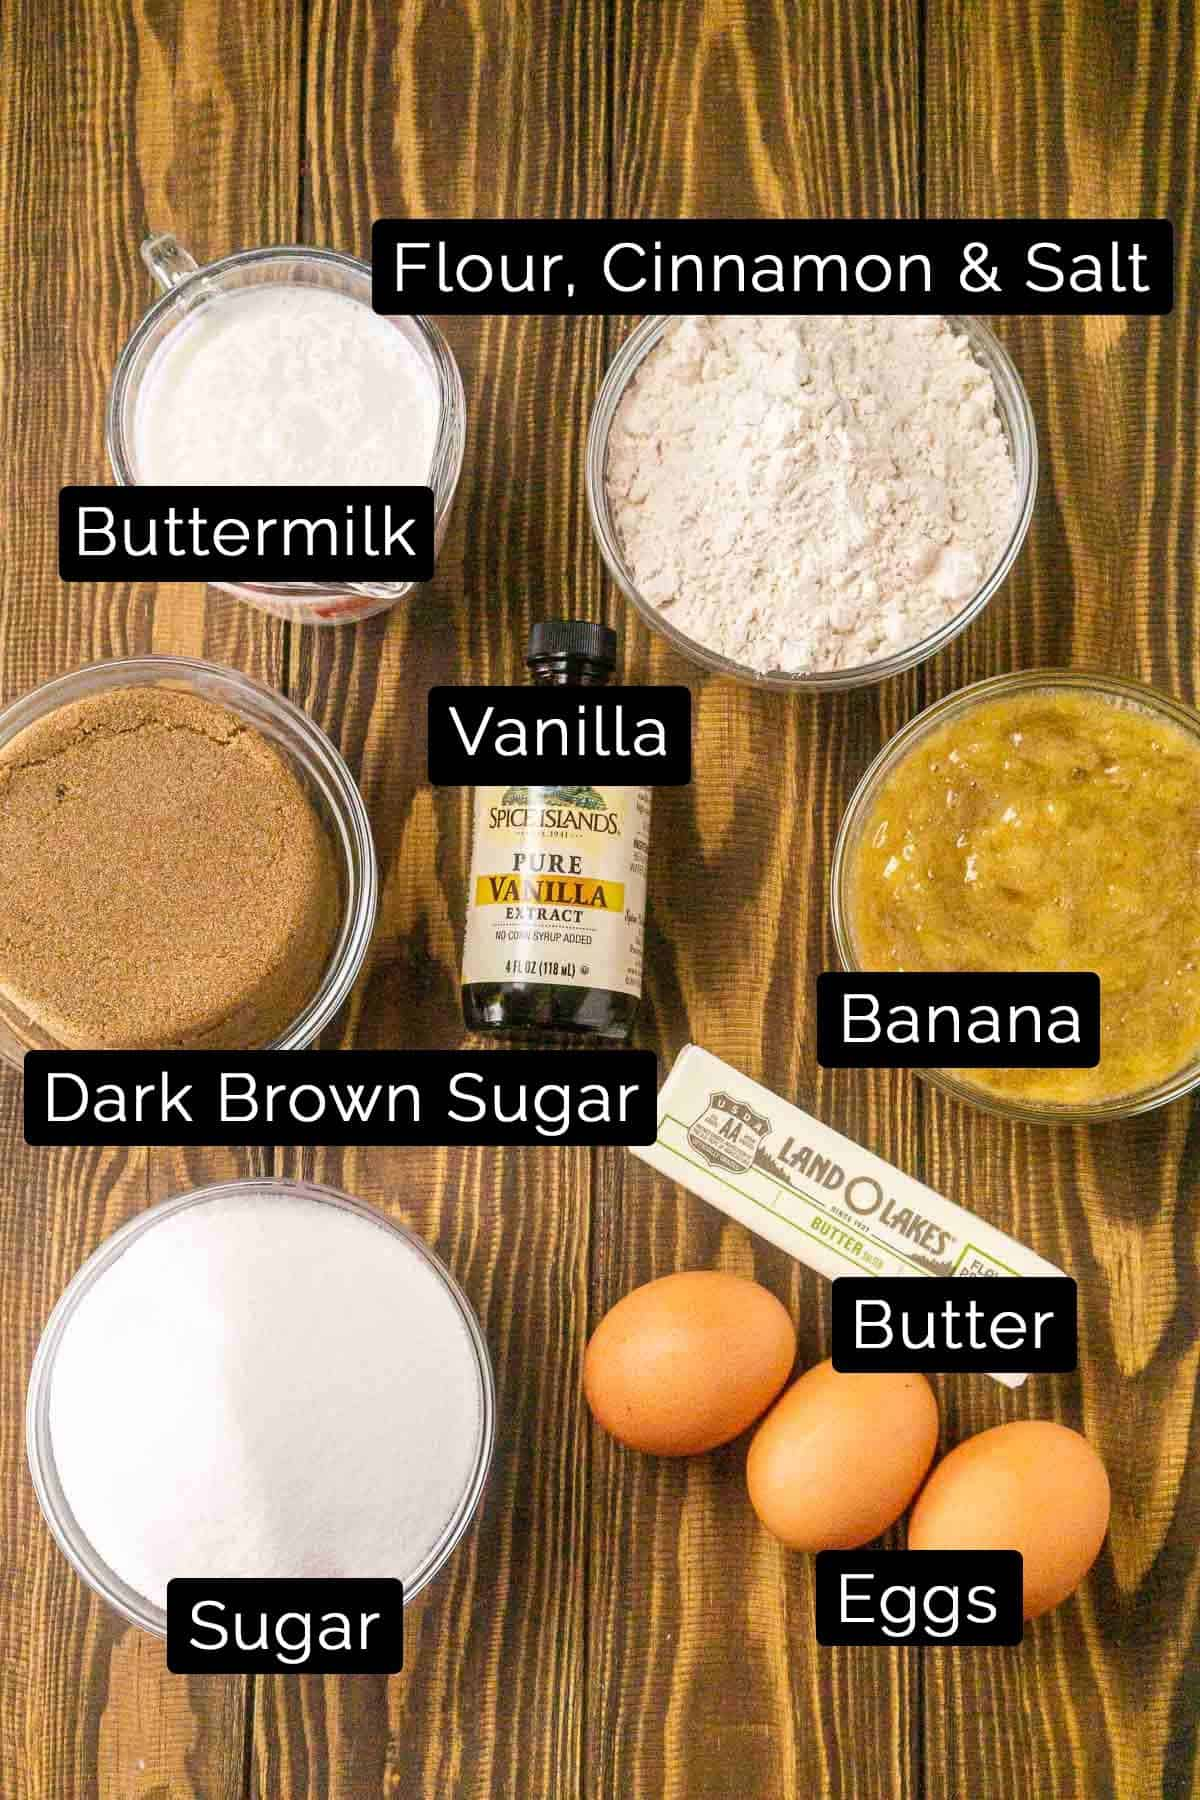 The ingredients with black and white labels on a wooden background.